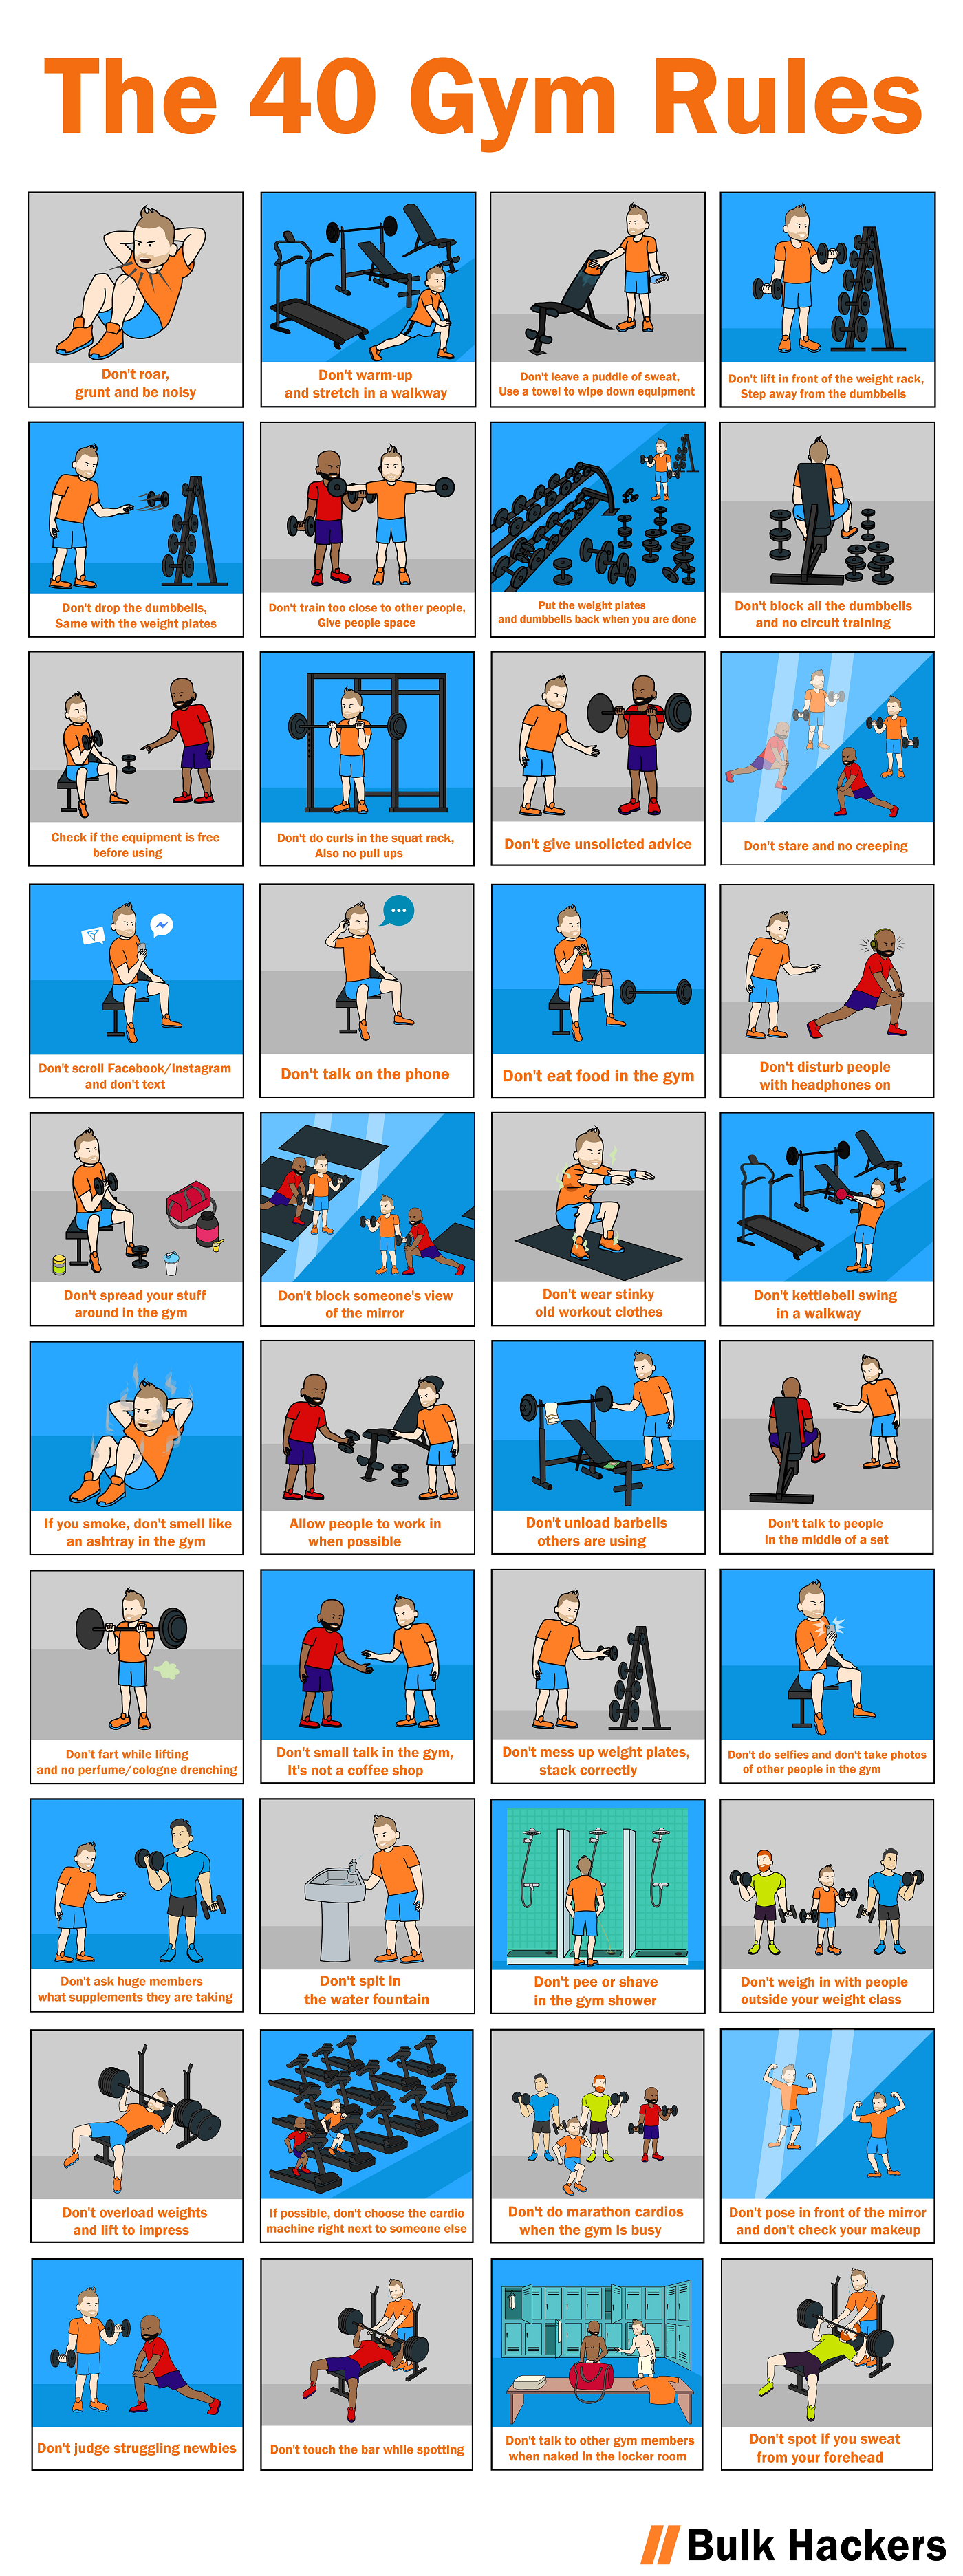 The 40 Gym Rules by Bulk Hackers